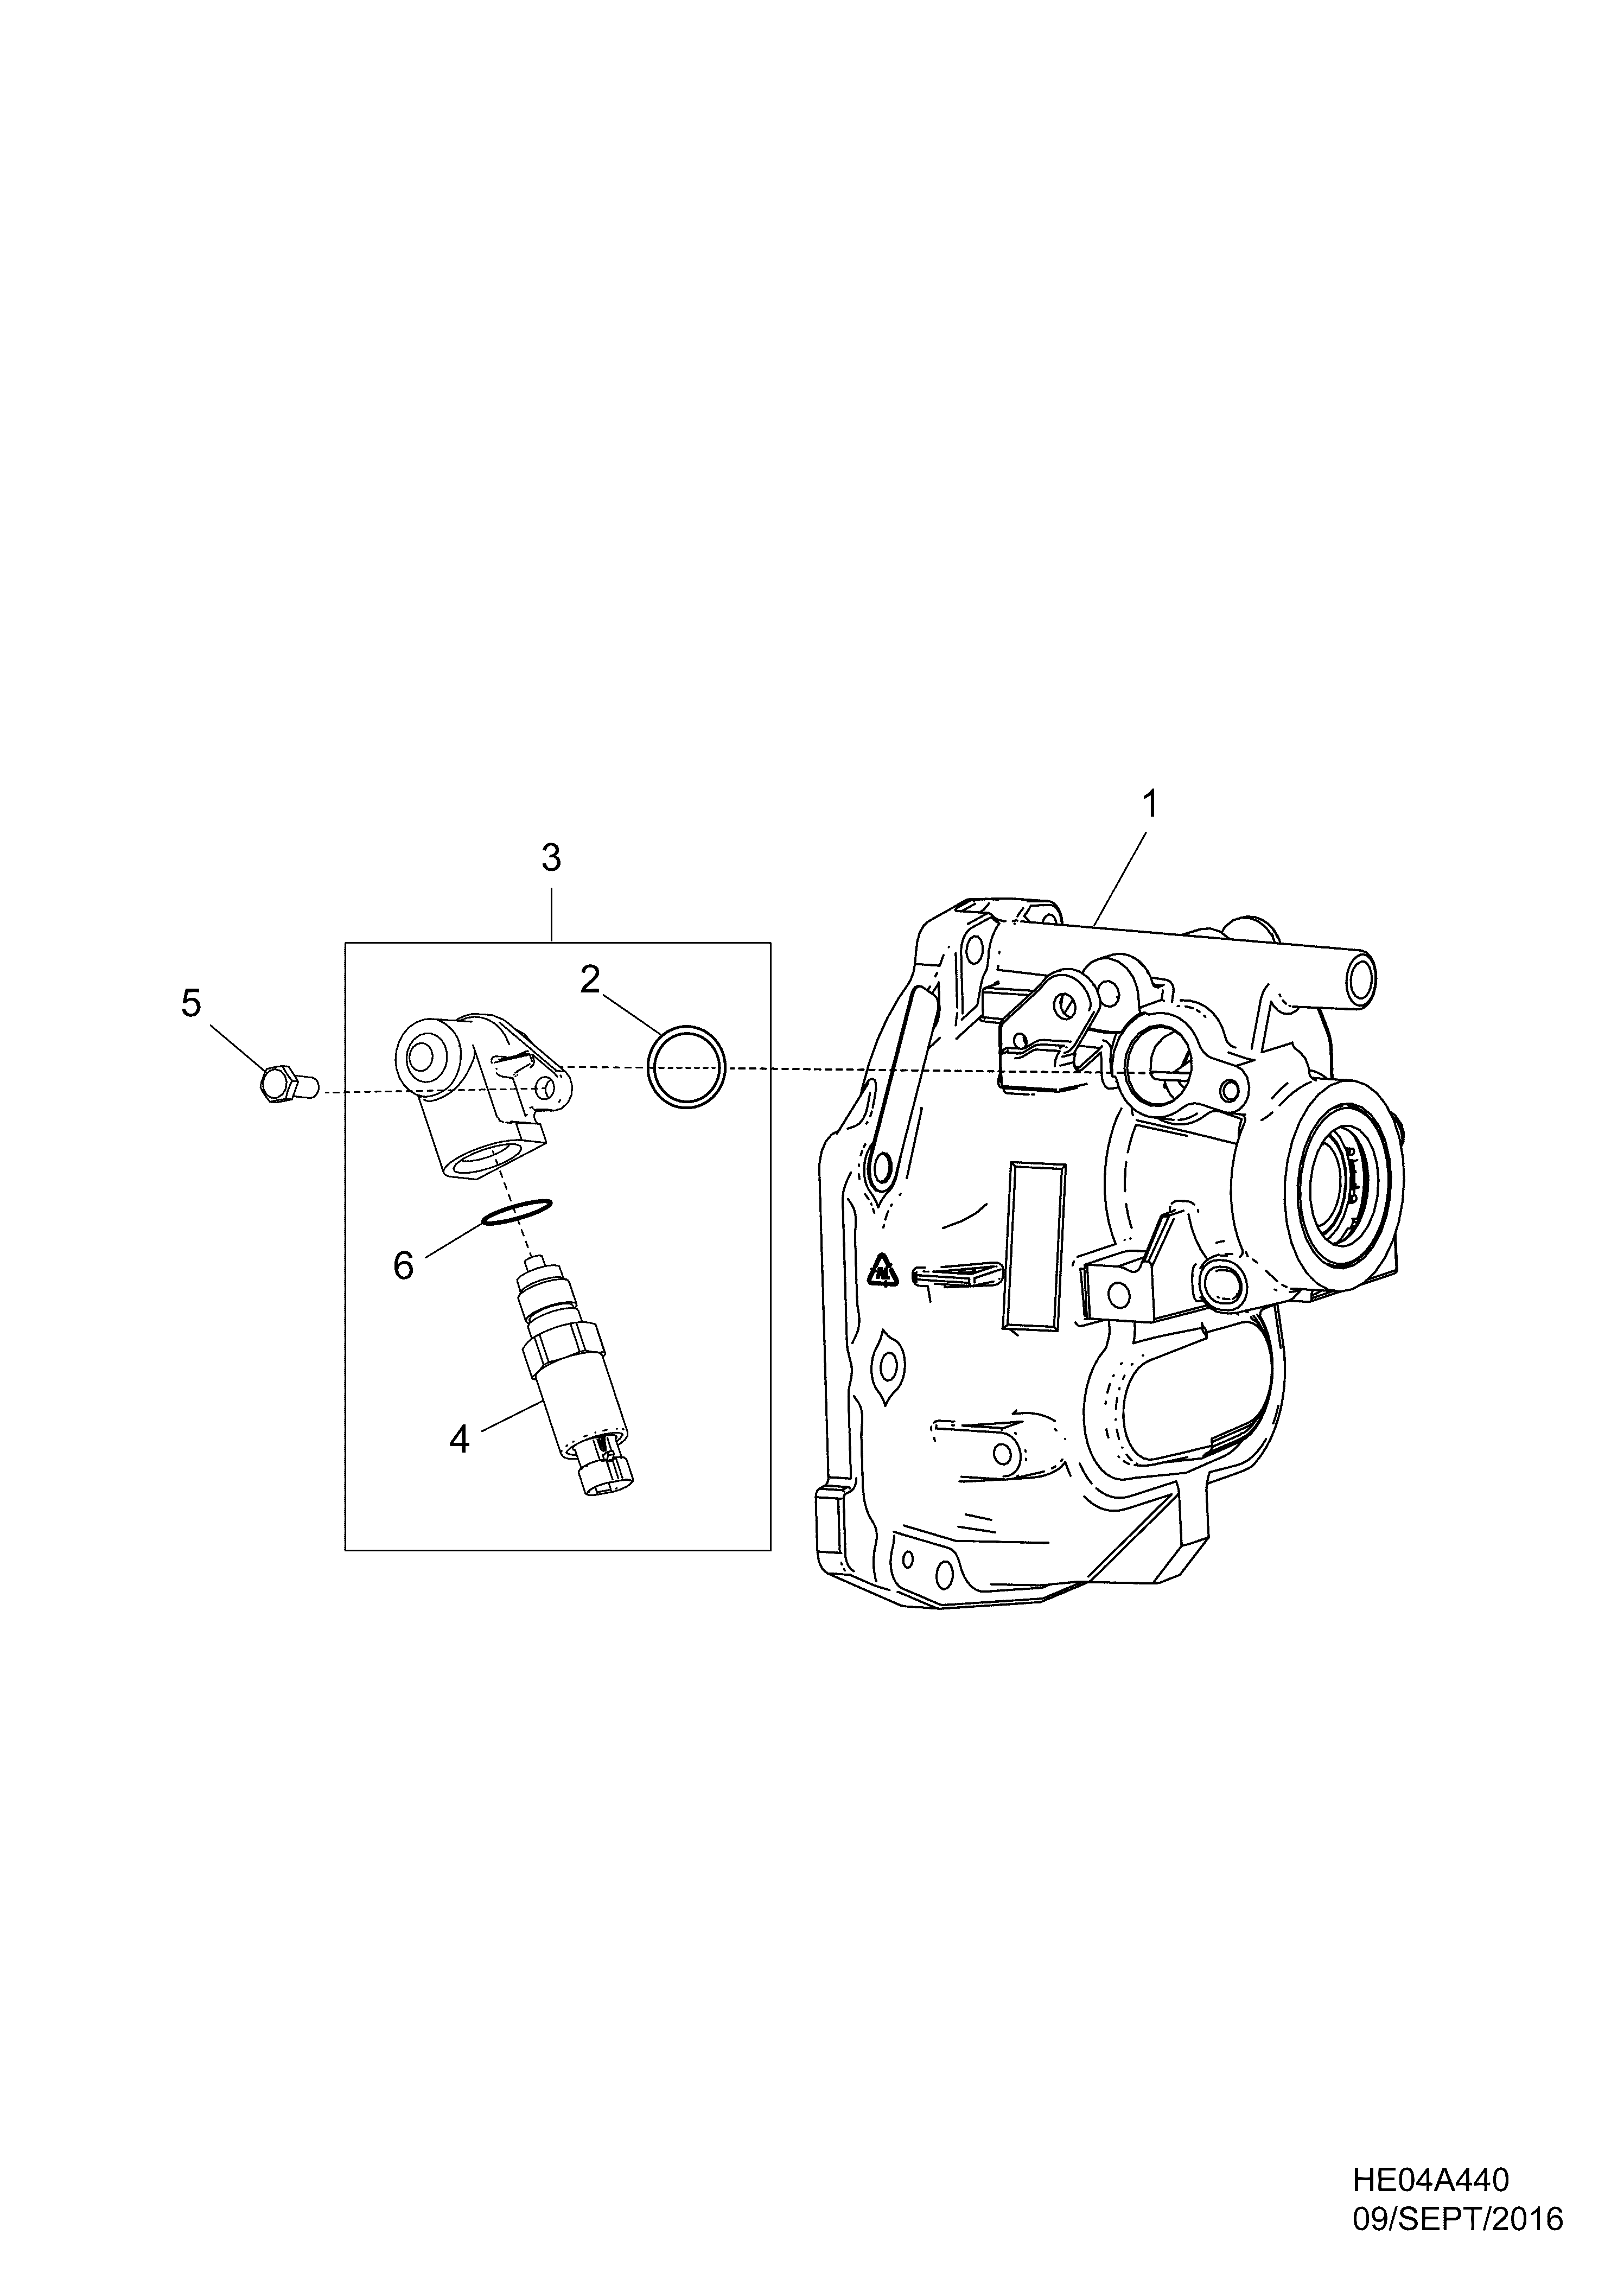 T56 Transmission Exploded View Reverse Lockout Wiring Diagram E Speed Manual 2993x4200